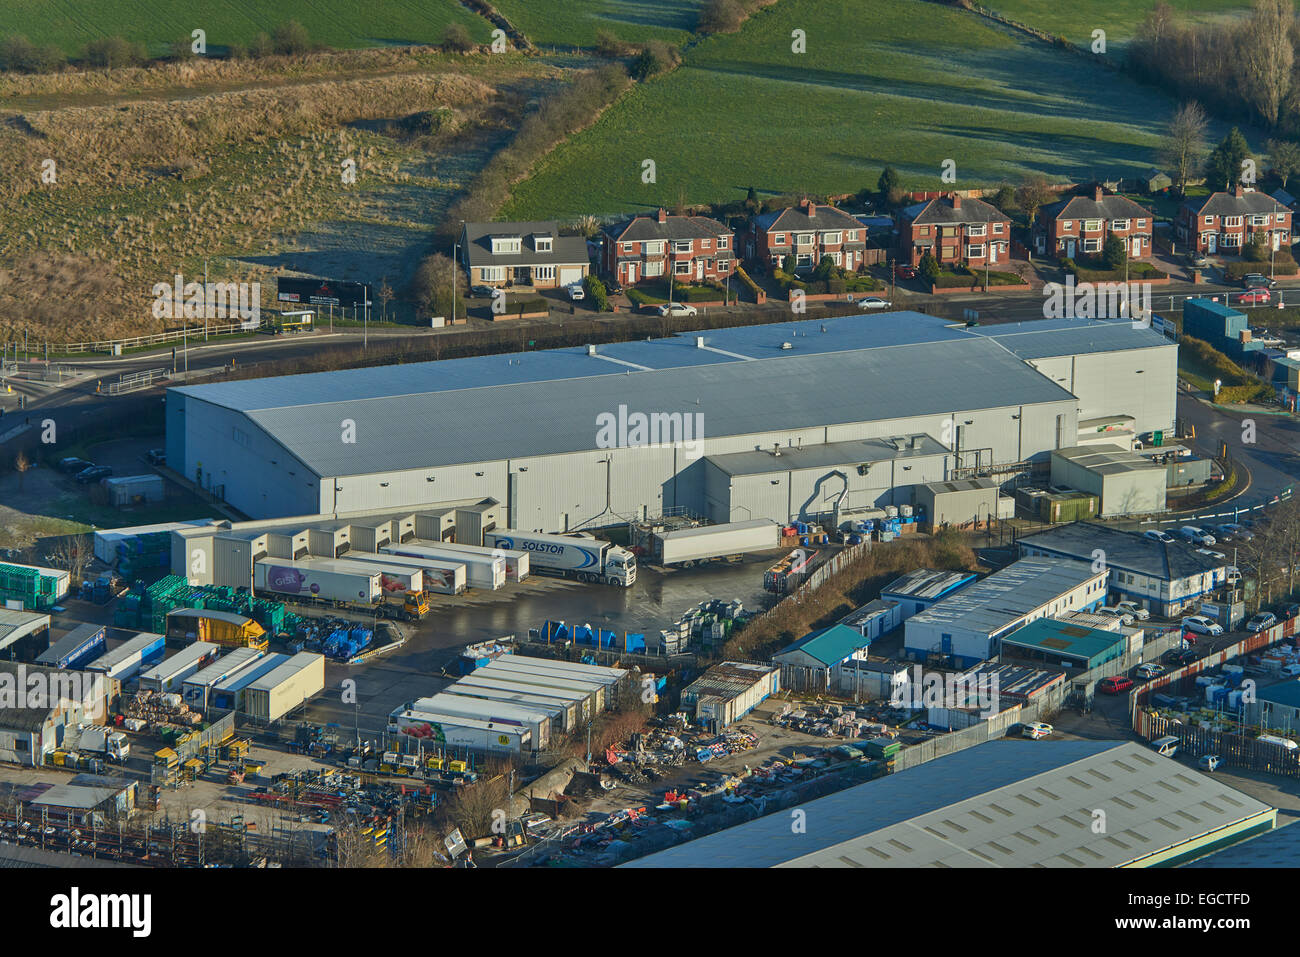 Aerial photograph of warehouse on Astley Industrial Estate, Chaddock Lane, Astley. - Stock Image